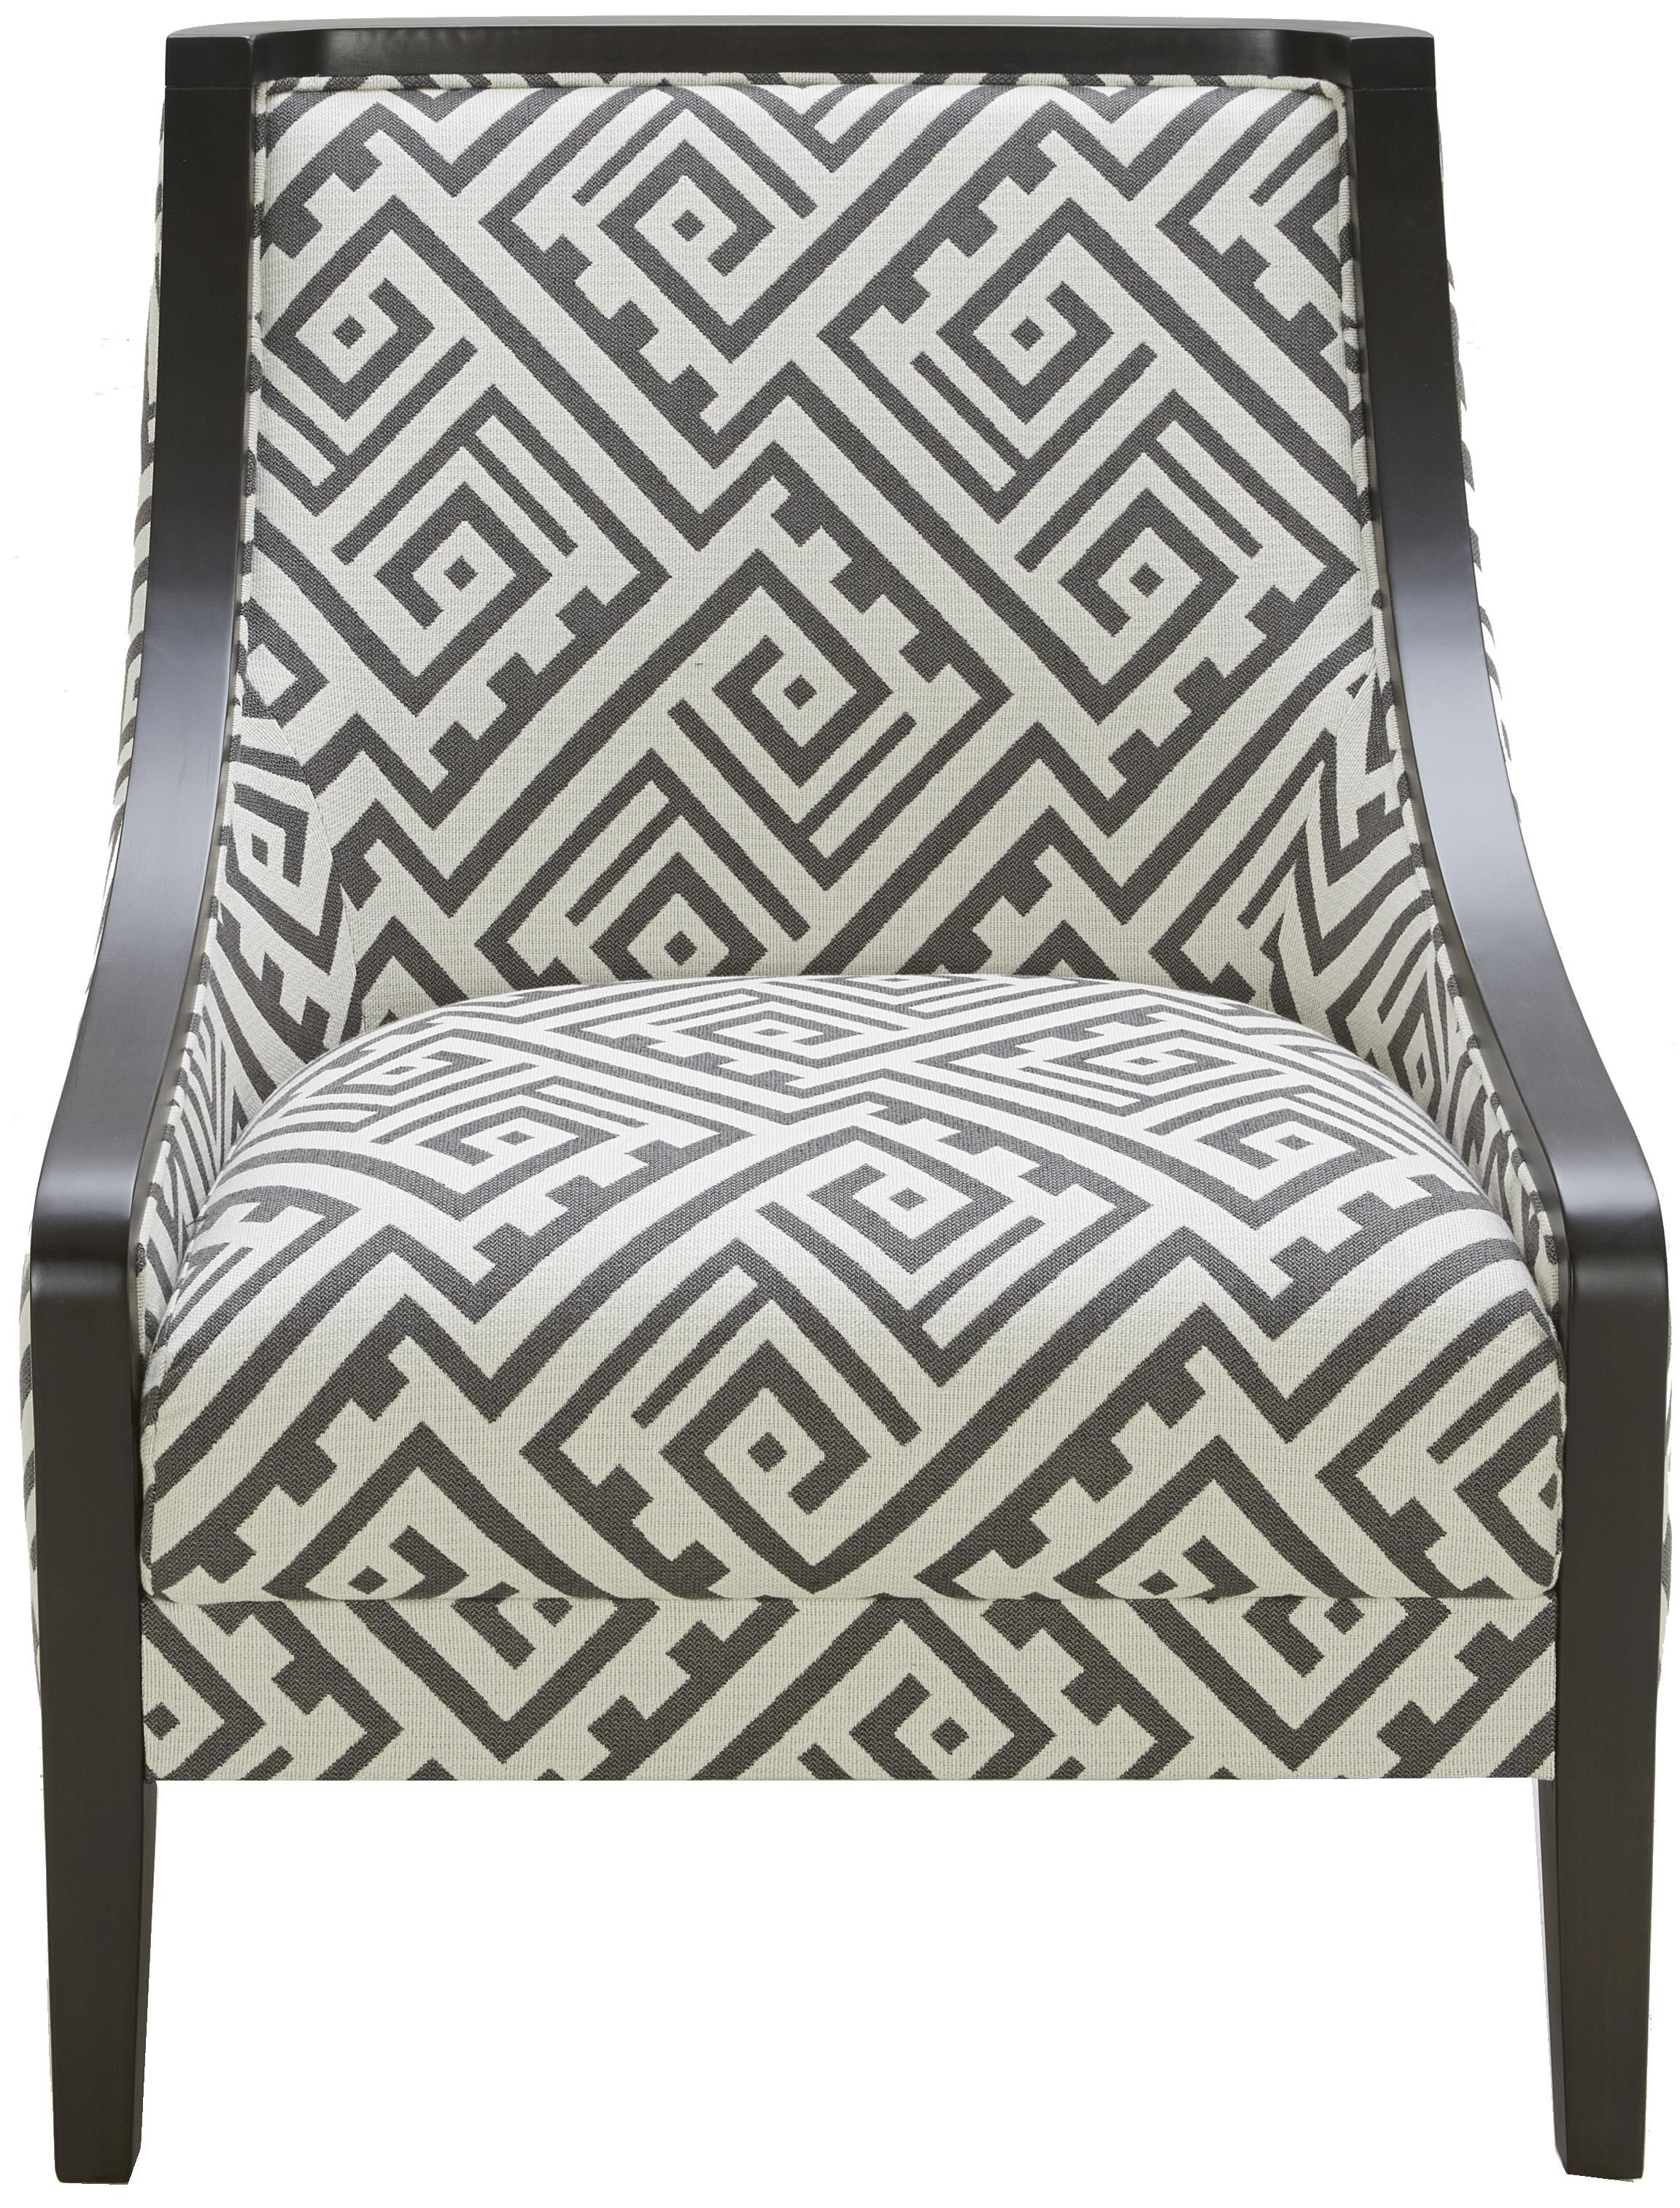 urban accents furniture. Urban Evolution Wood TrimTraditional Accent Chair Urban Accents Furniture E